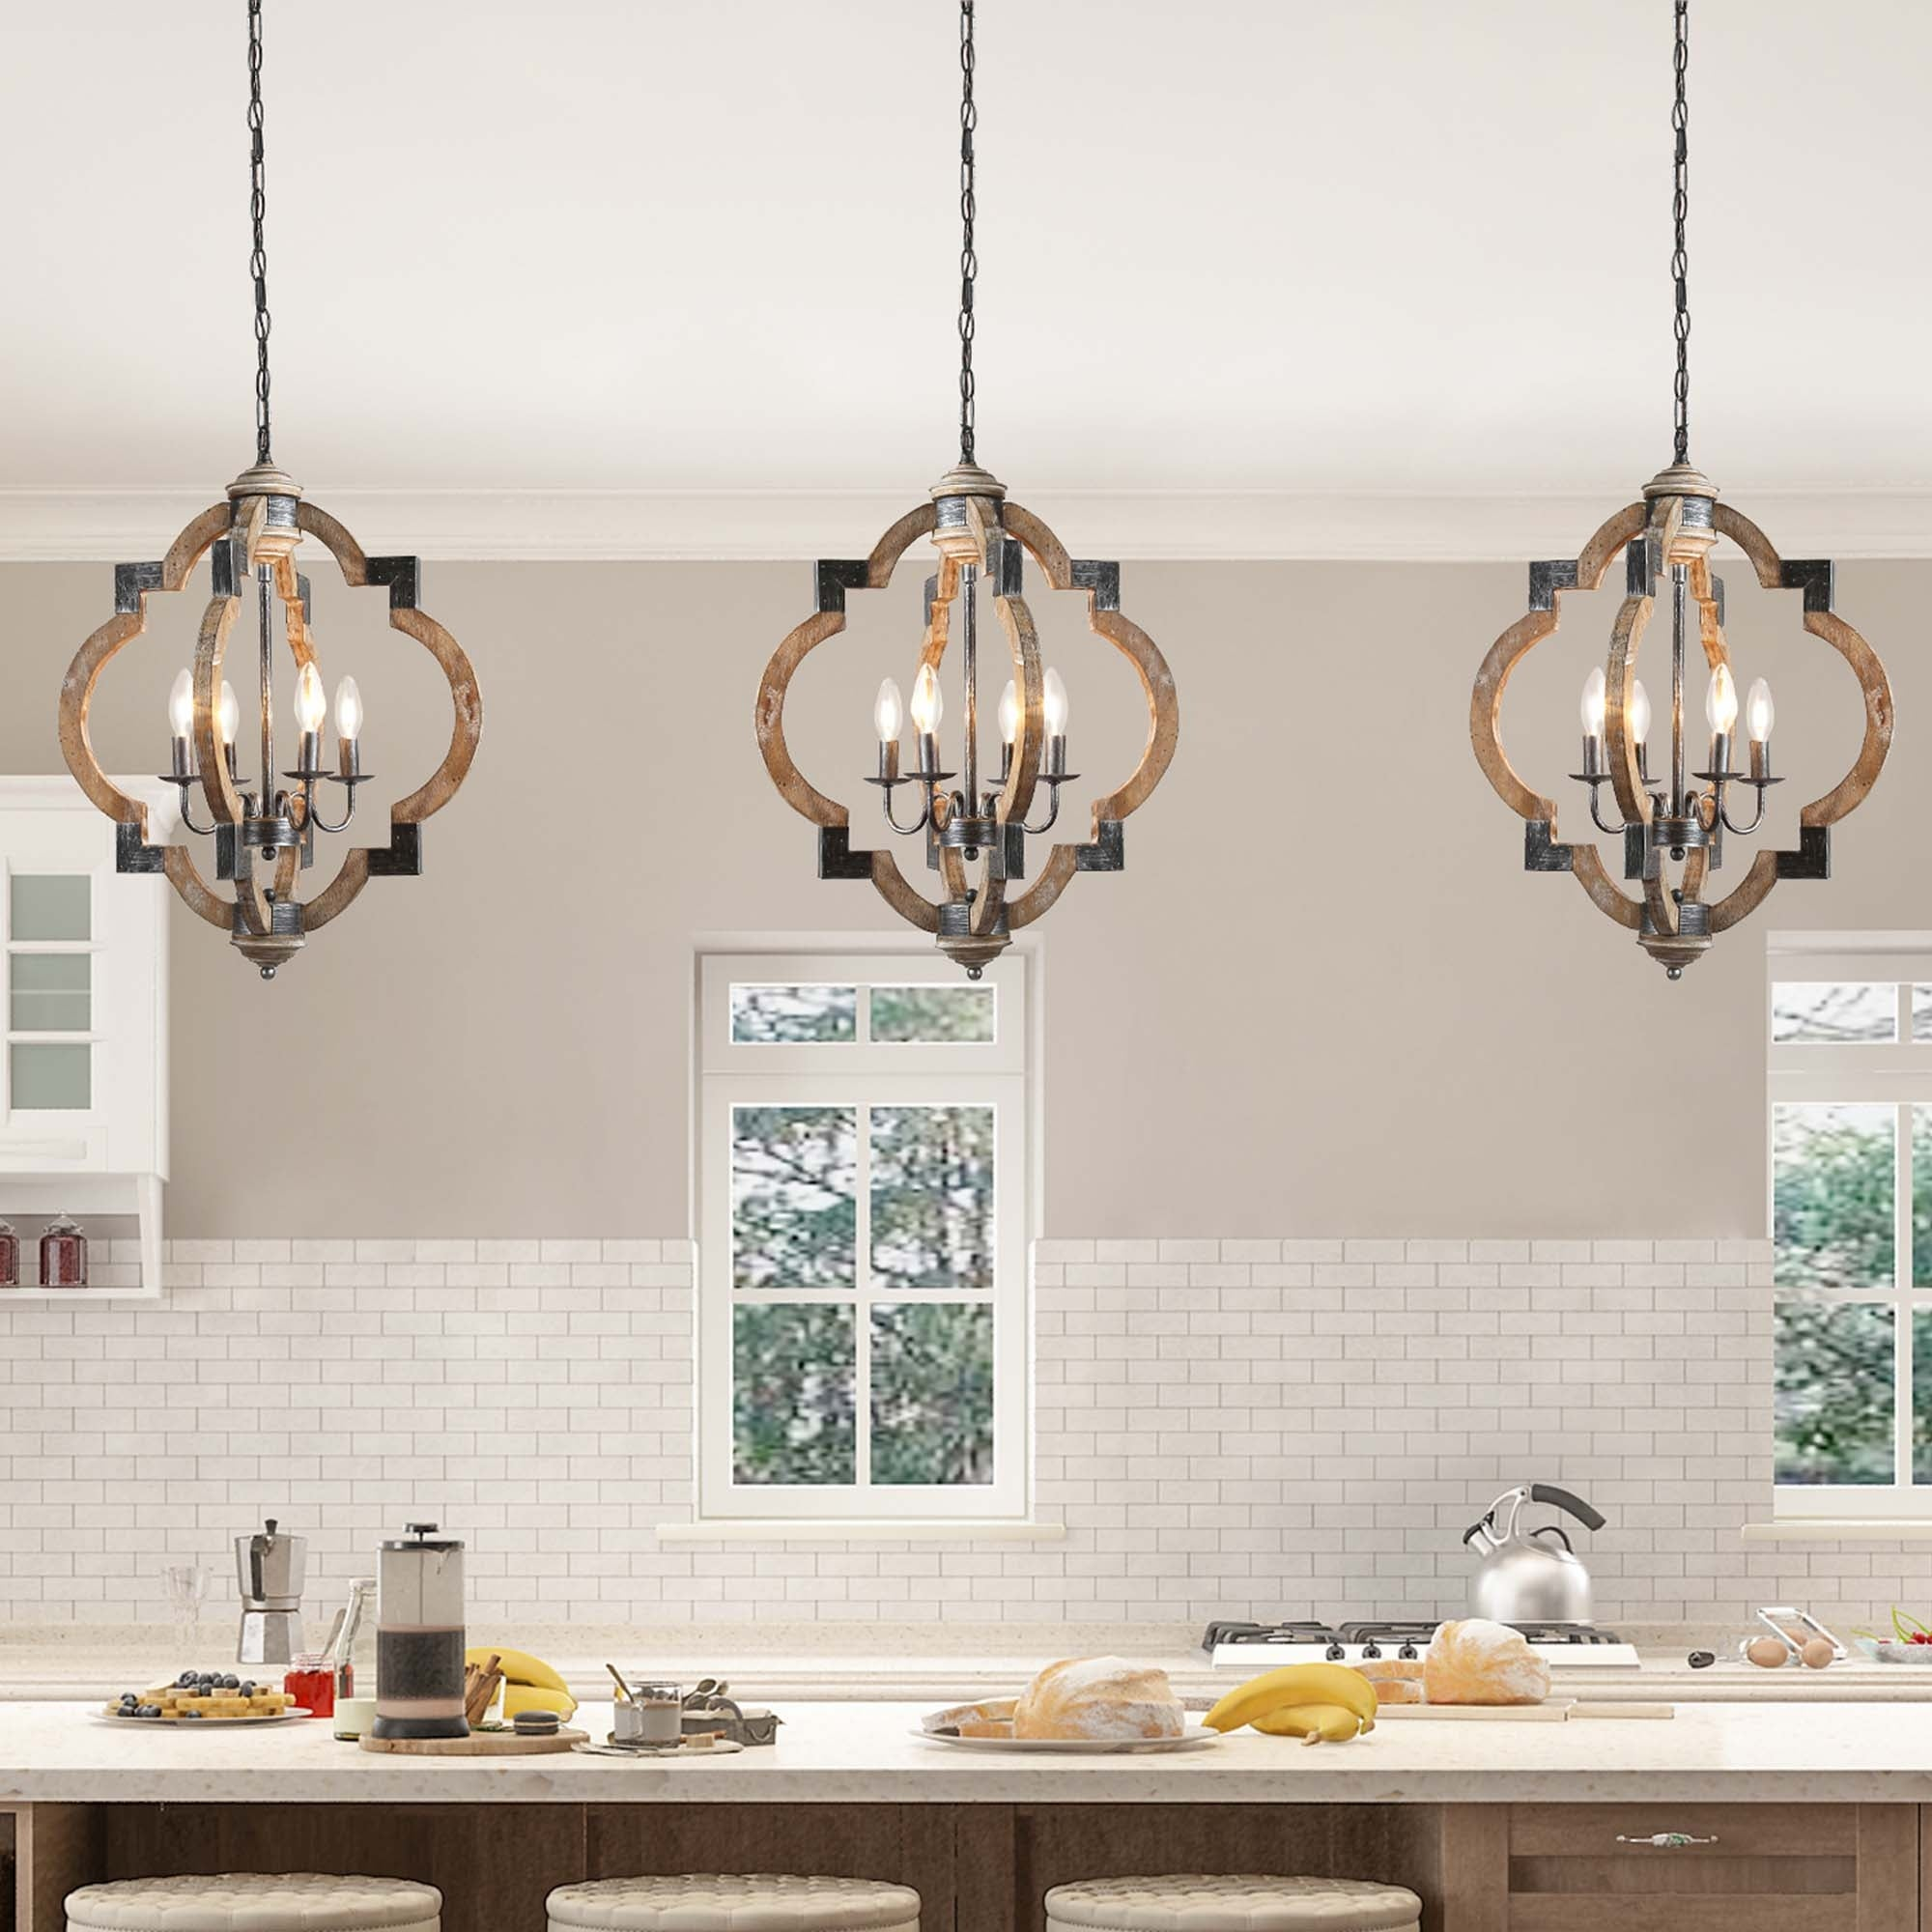 The Gray Barn Hester Gulch Farmhouse Wood Chandelier 4 Lights Lantern Pendant Lighting For Kitchen Island W19 7 X H24 6 On Sale Overstock 29173827